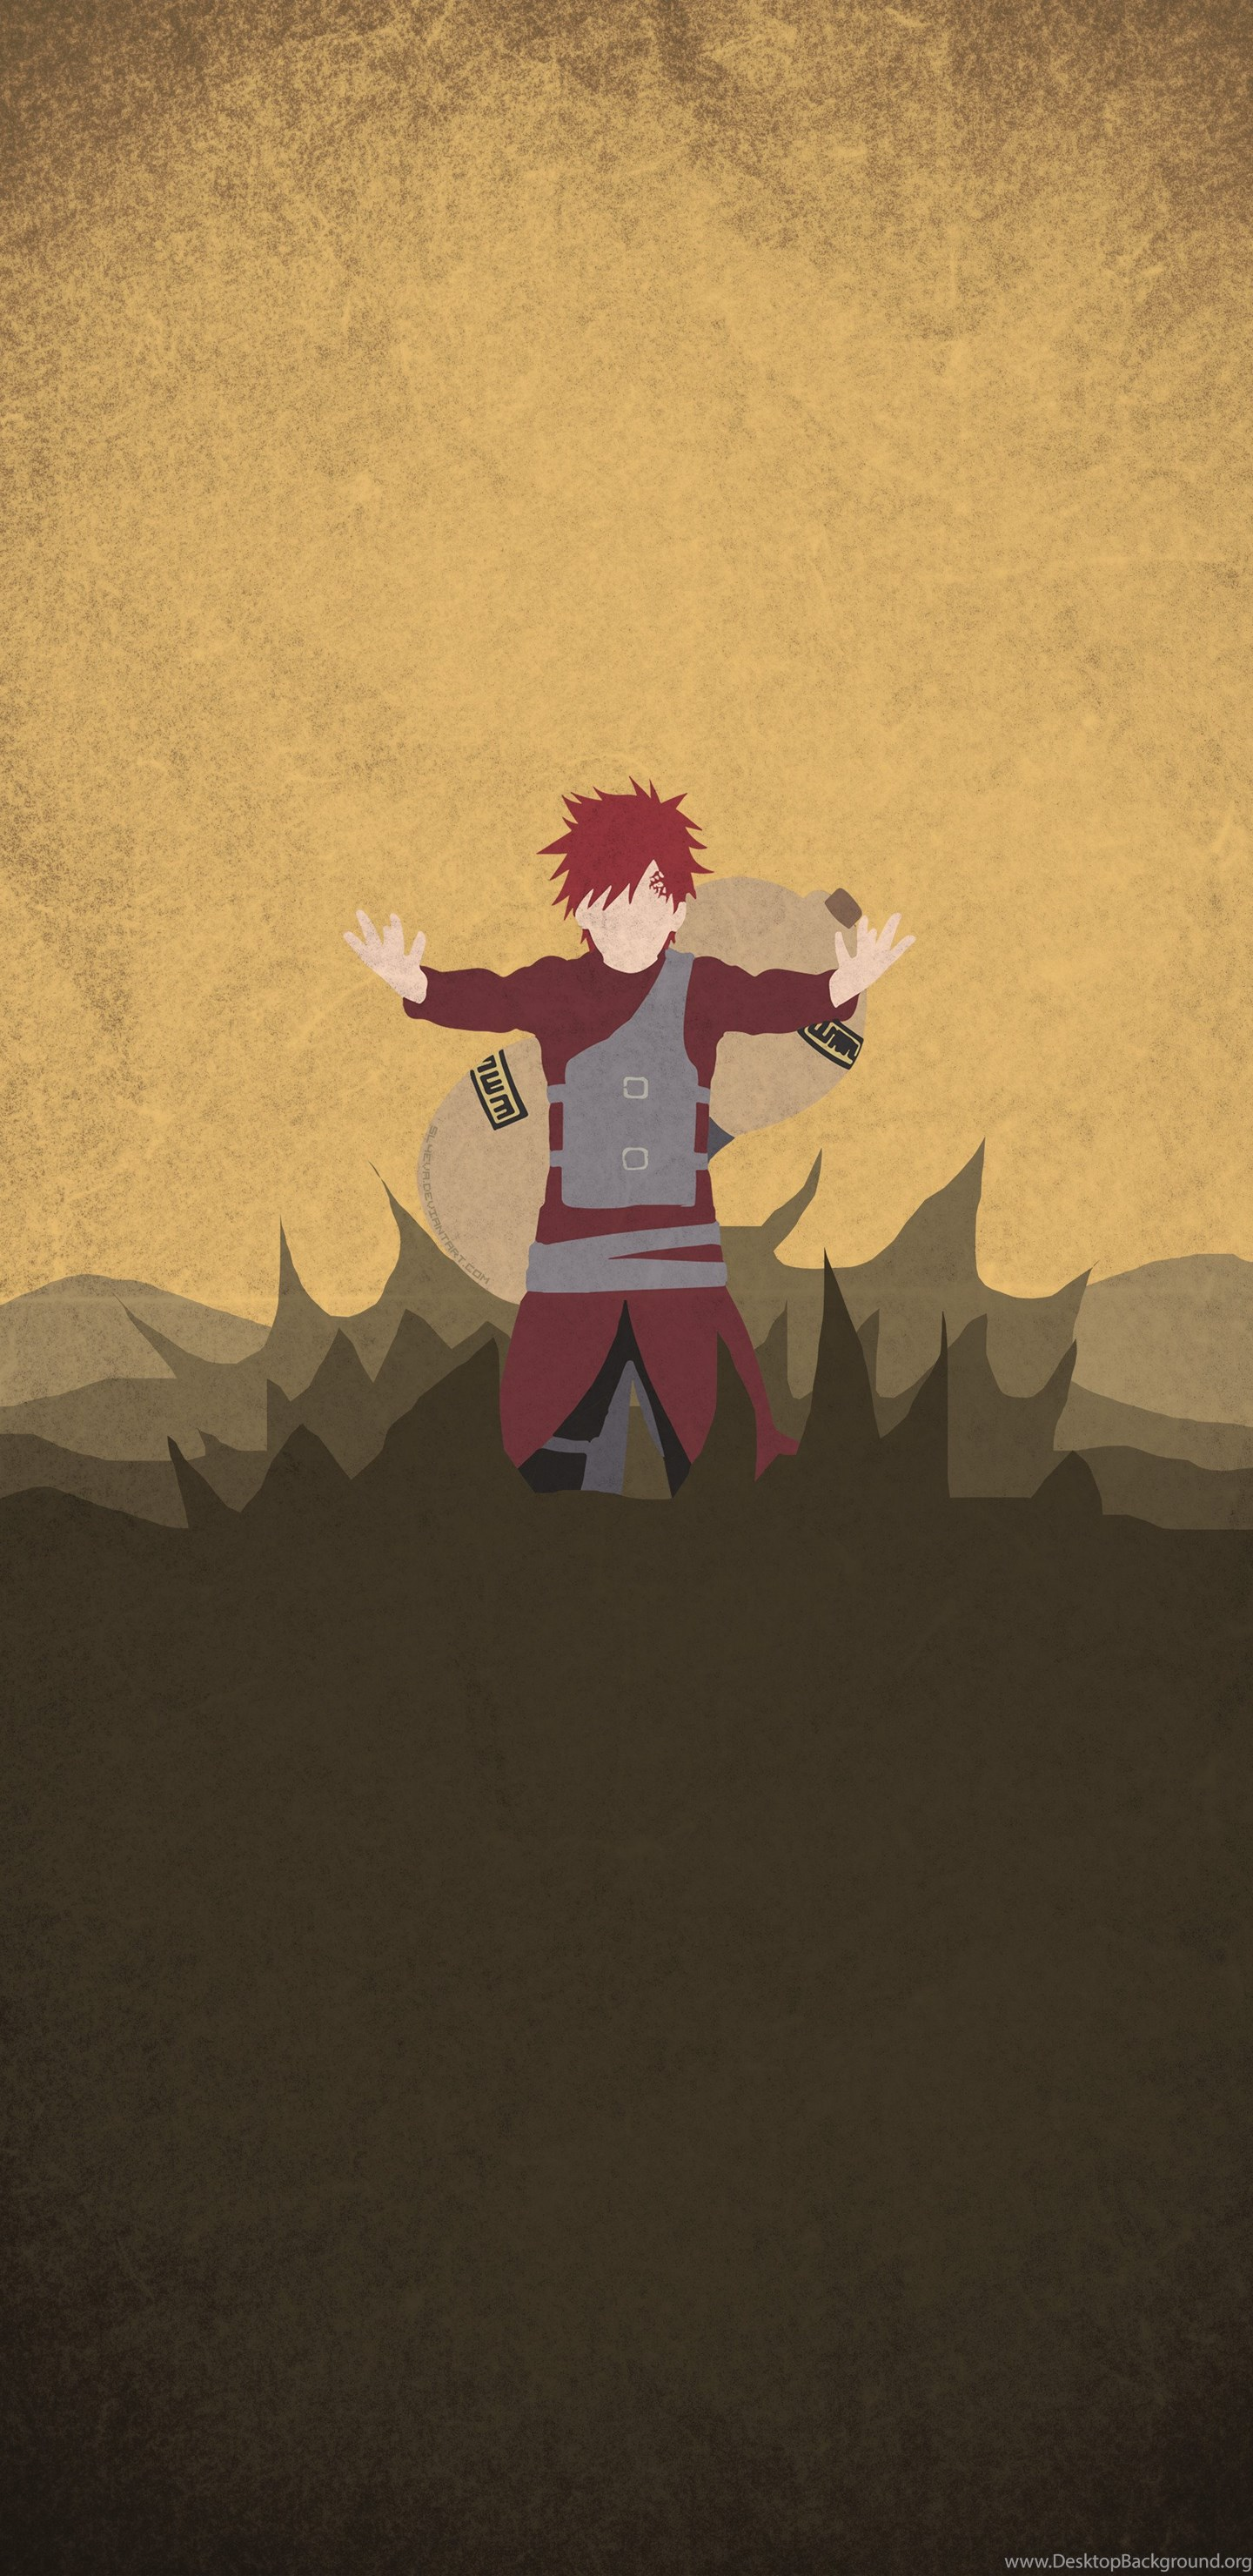 637274 10 pc and mobile hd naruto wallpapers you need in your